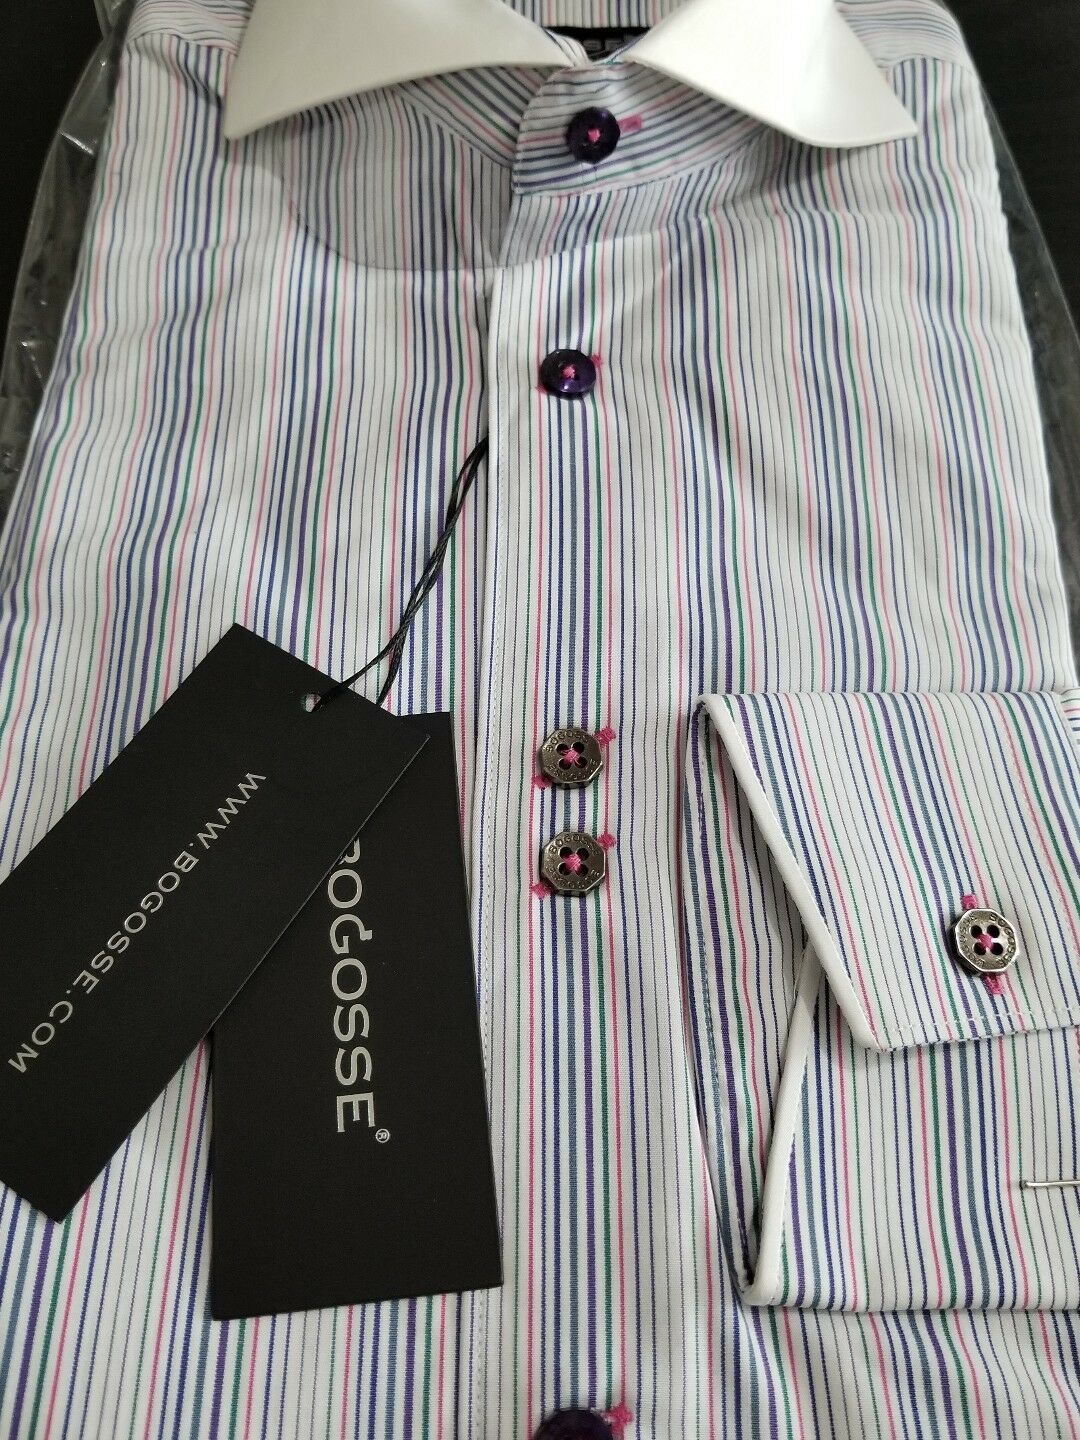 UNIQUE NWT Bogosse men's size 2 or Small long sleeve button down very nice